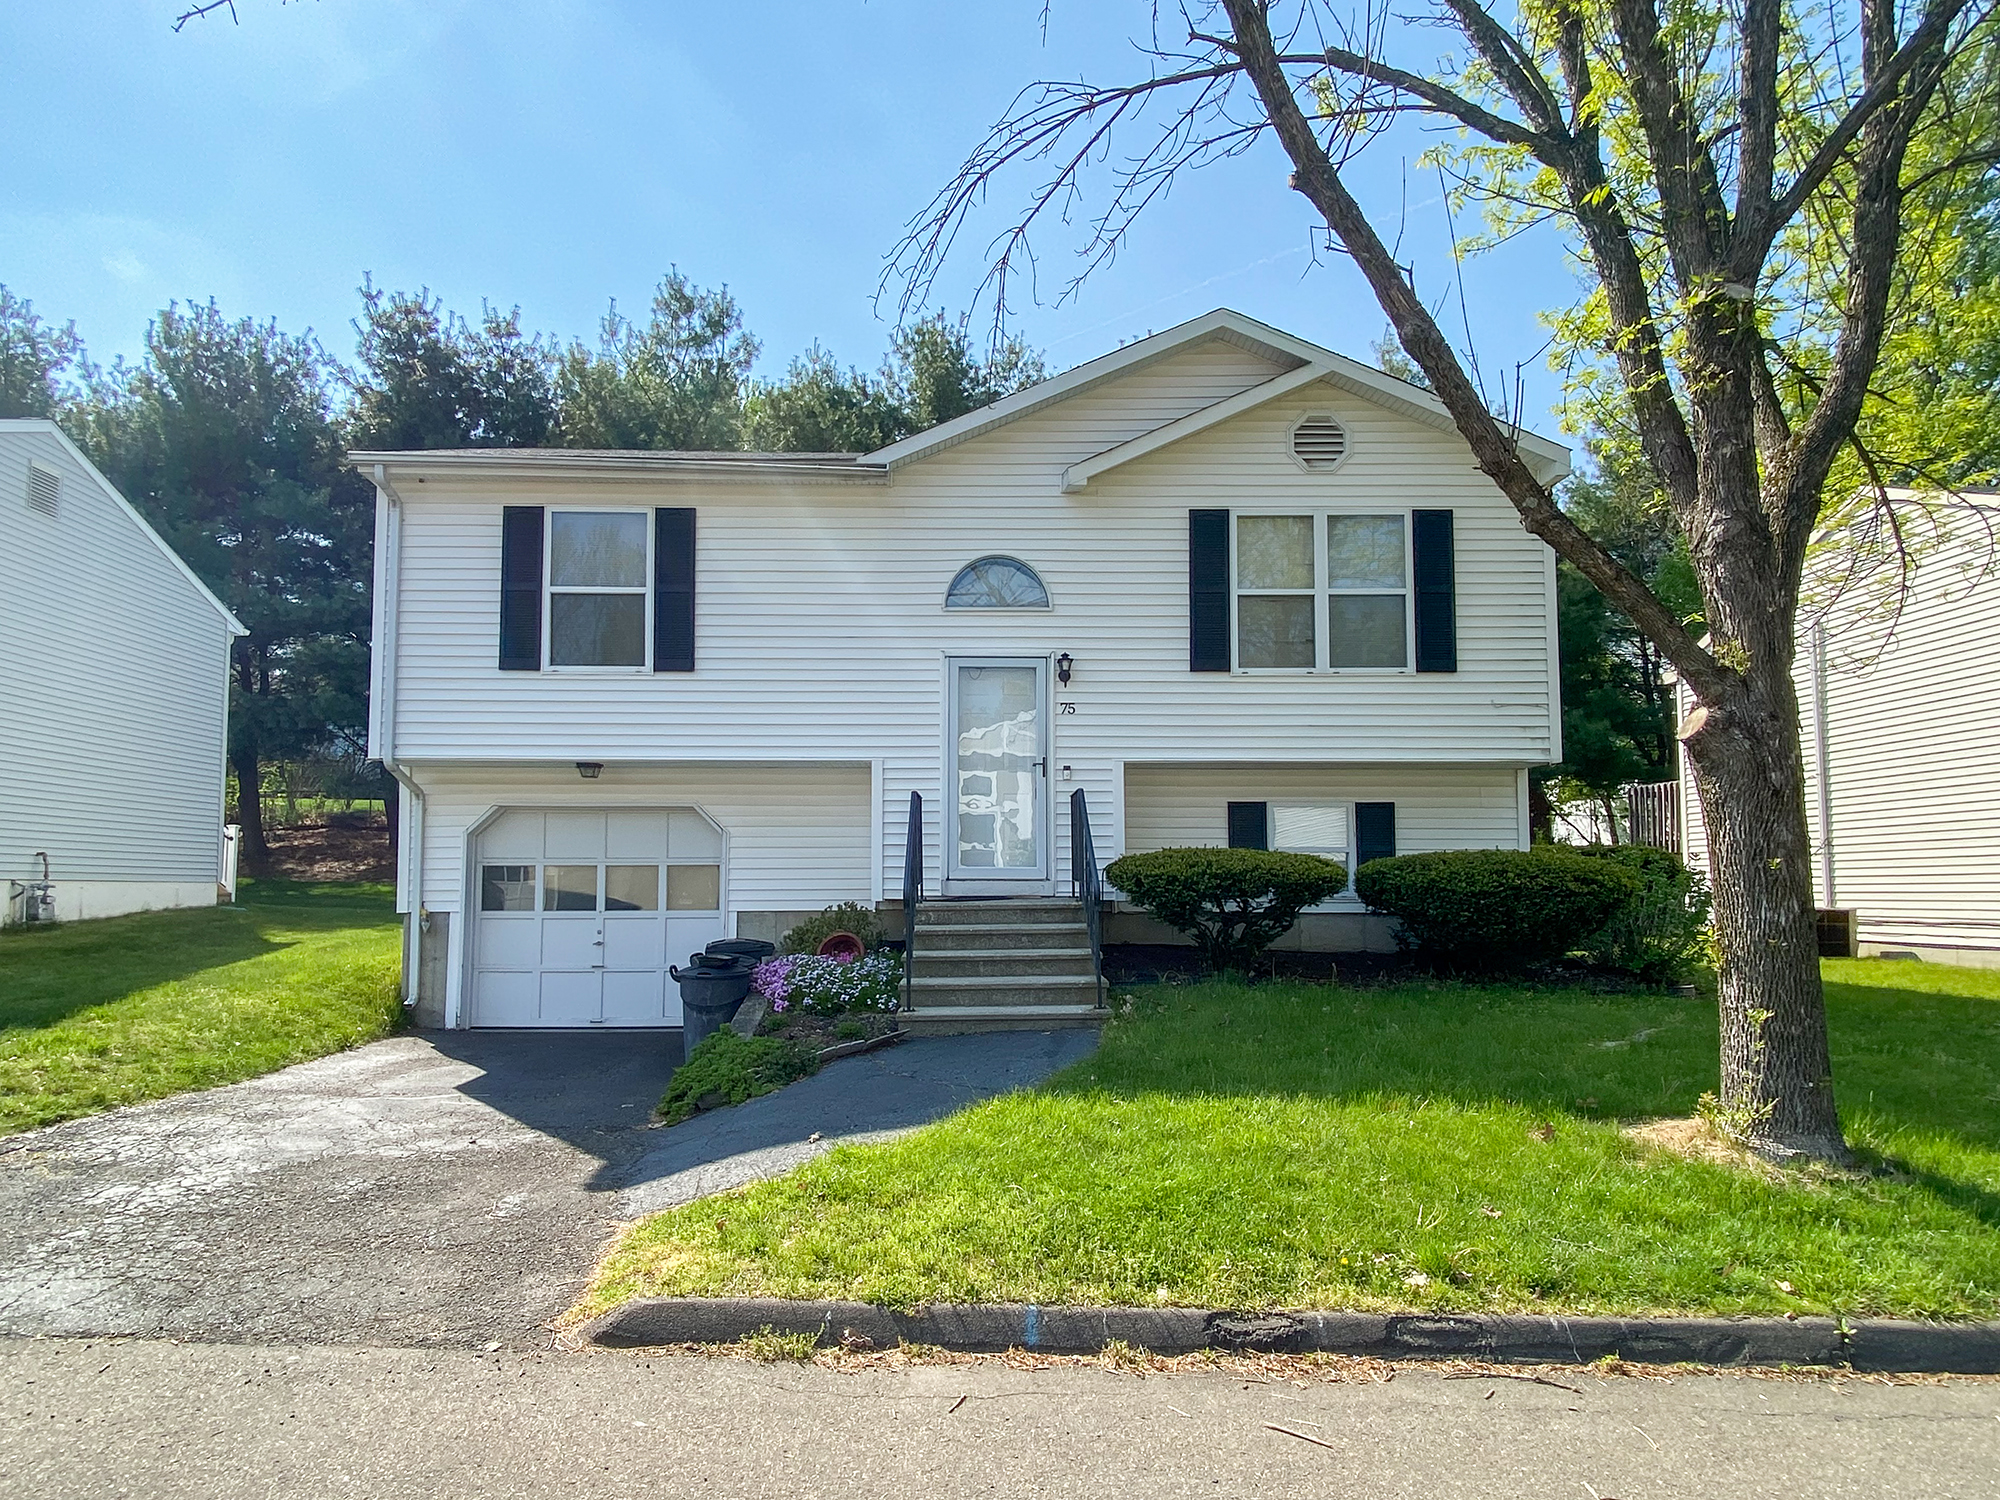 Home for sale in Milford CT